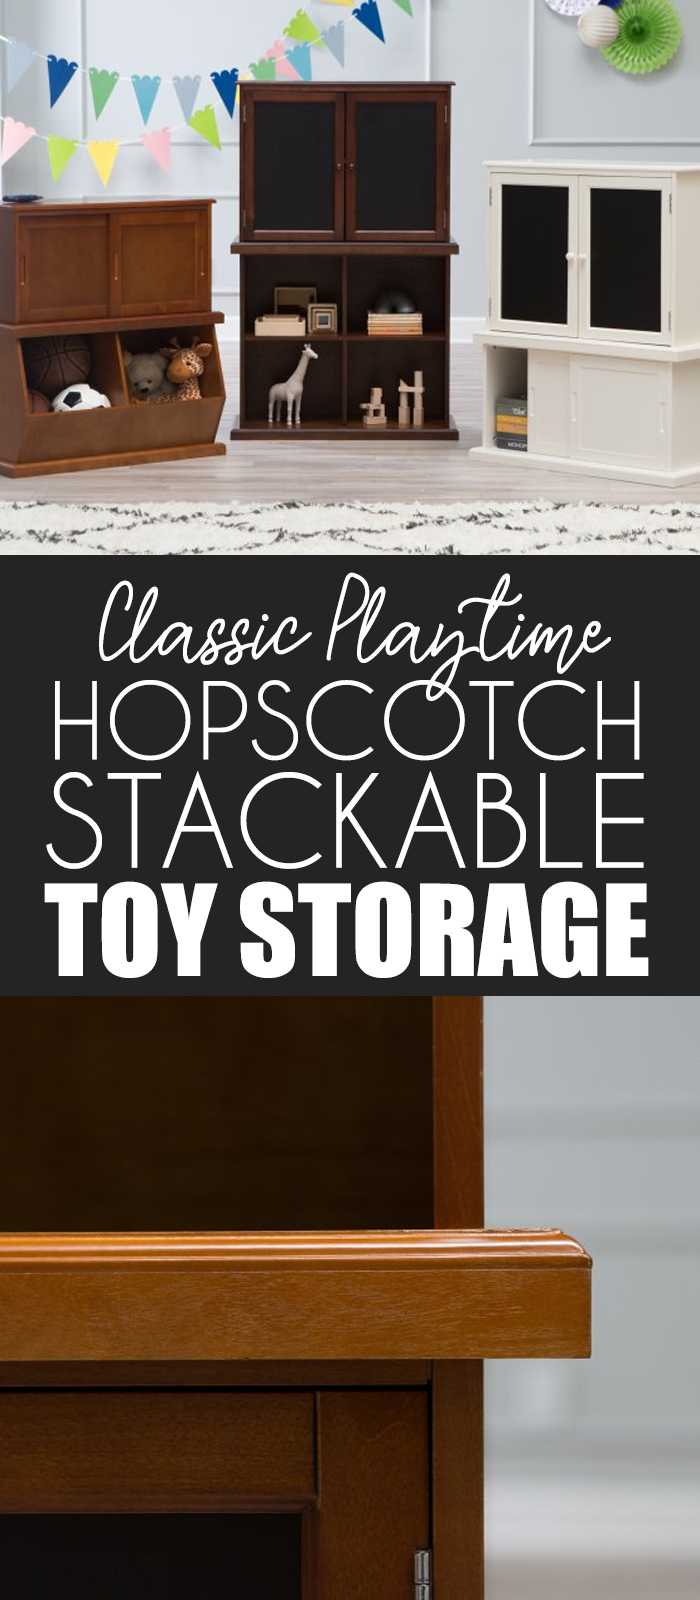 The Clic Playtime Hopscotch Stackable Toy Storage Throws Rotation Into Regular Routines To Keep Same Old Toys And Room From Feeling Stale